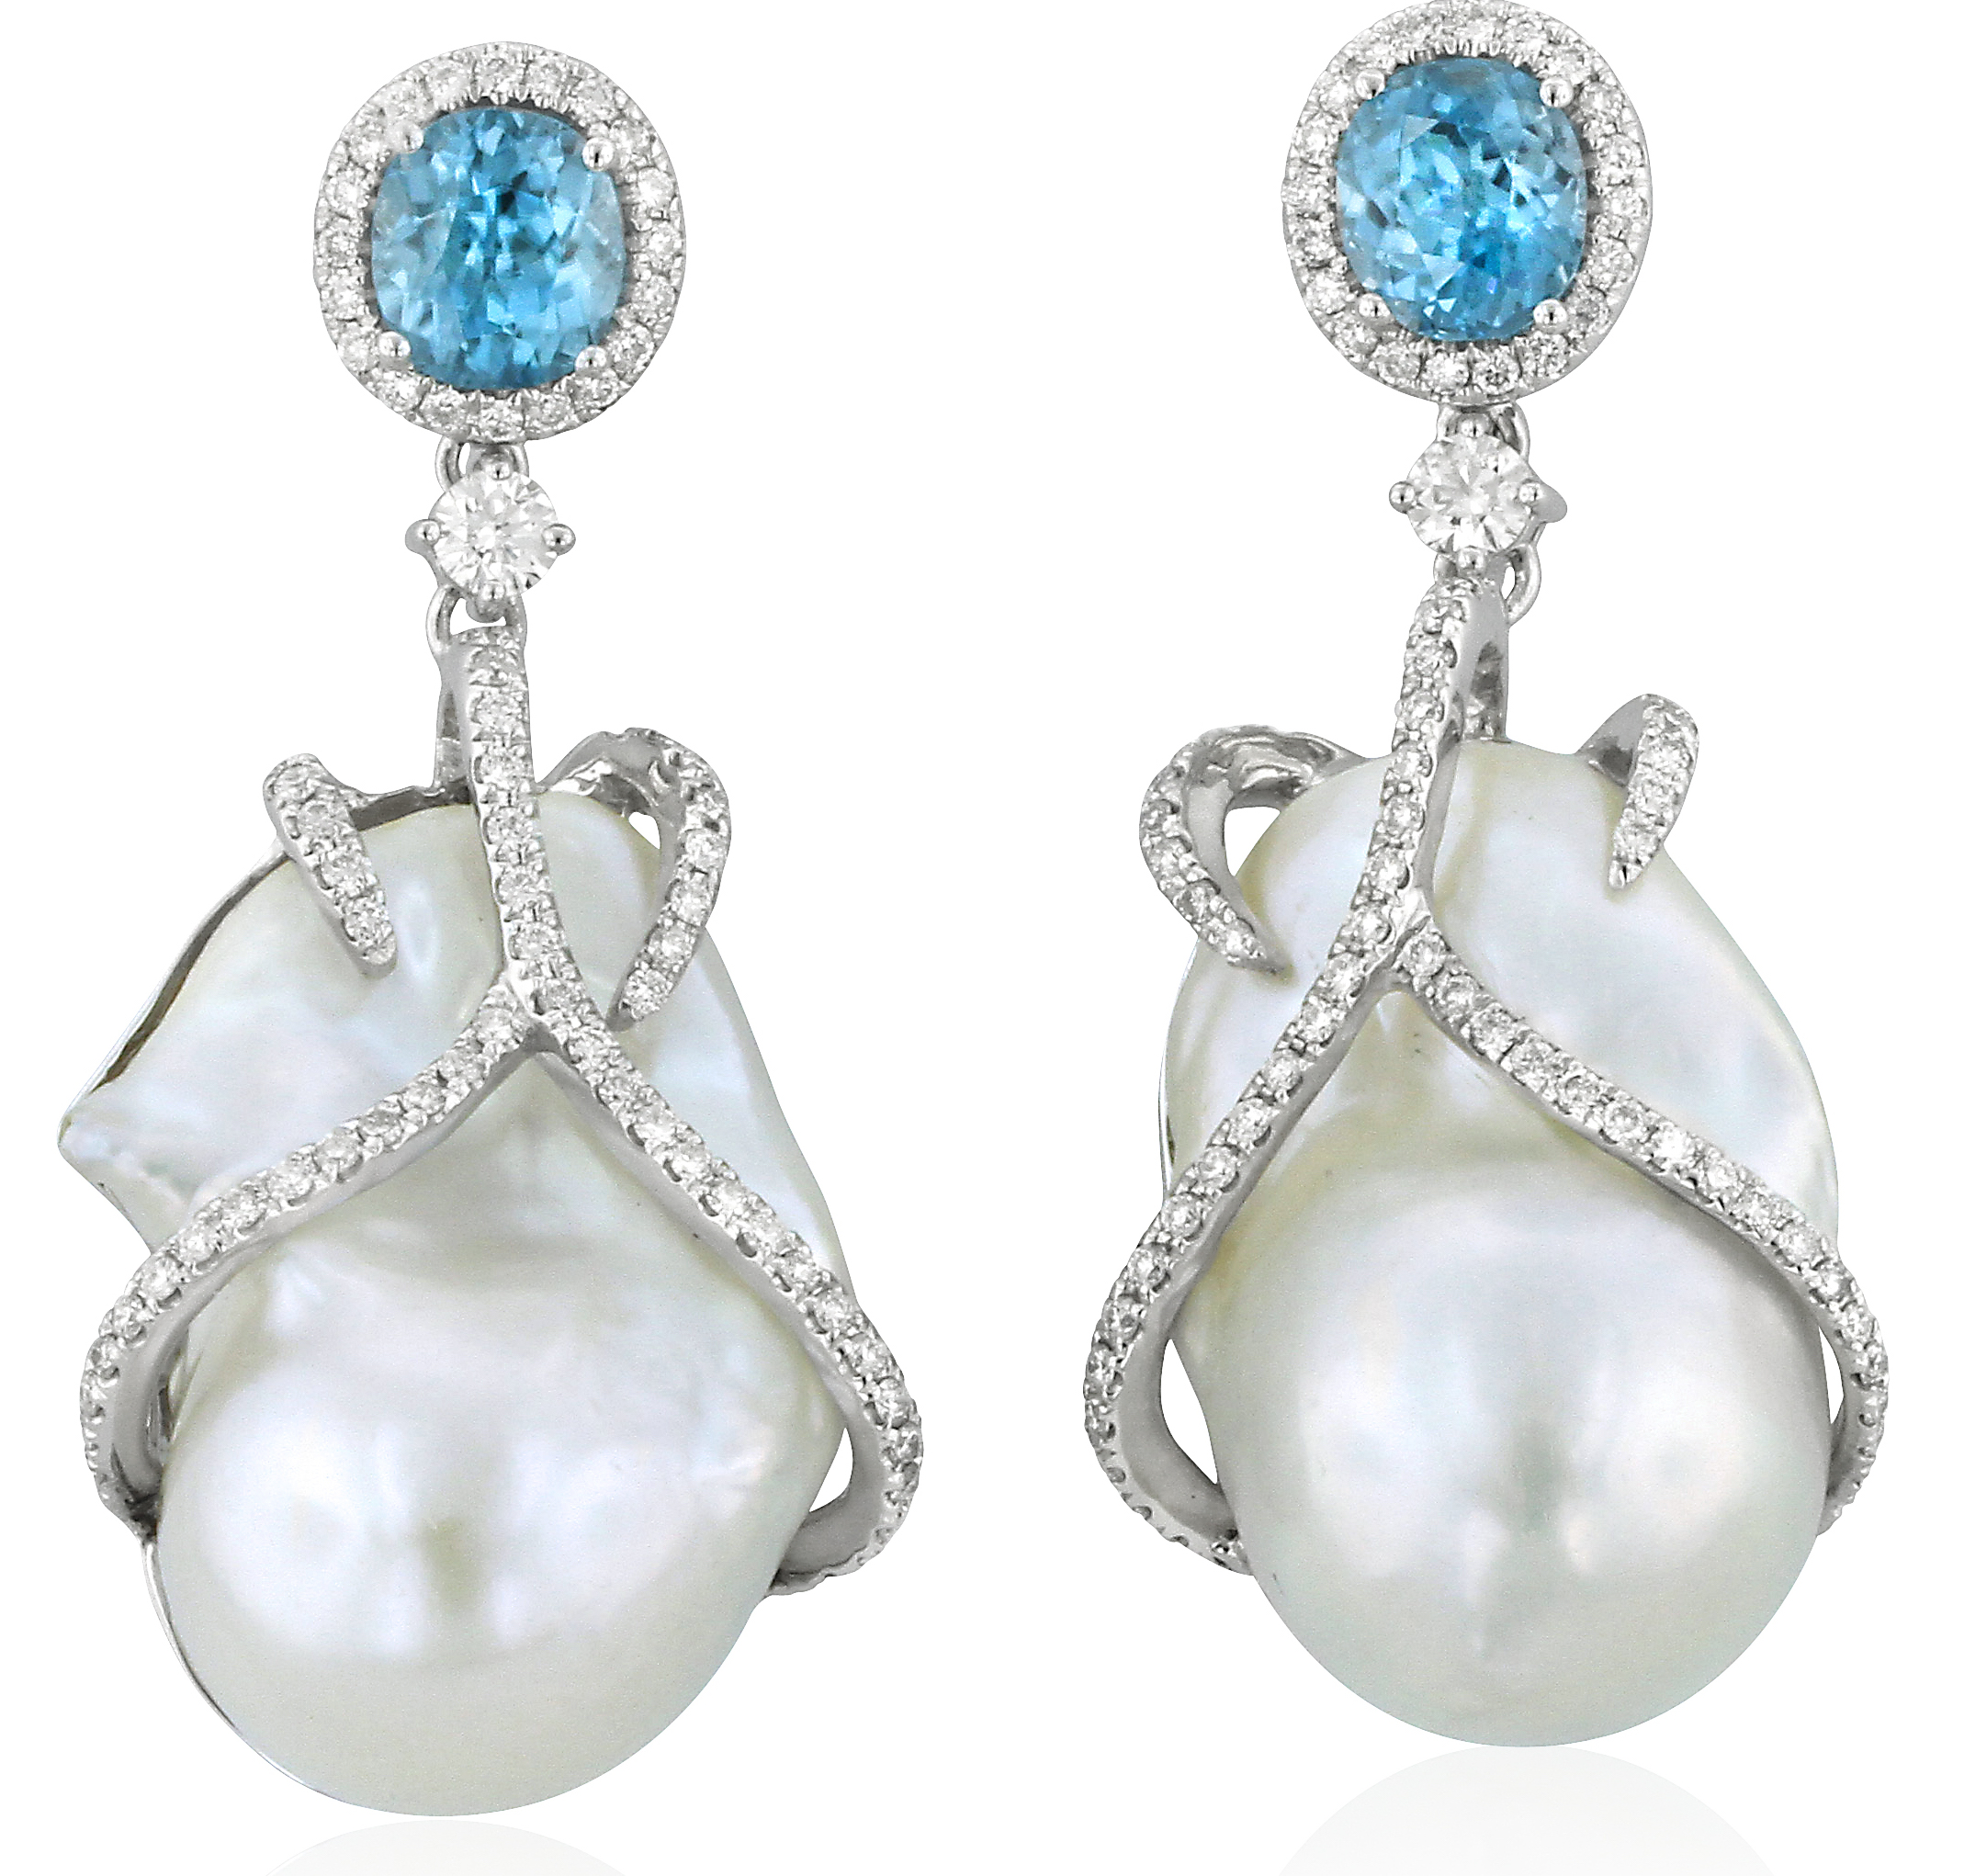 Yael Designs pearl and zircon drop earrings | JCK On Your Market